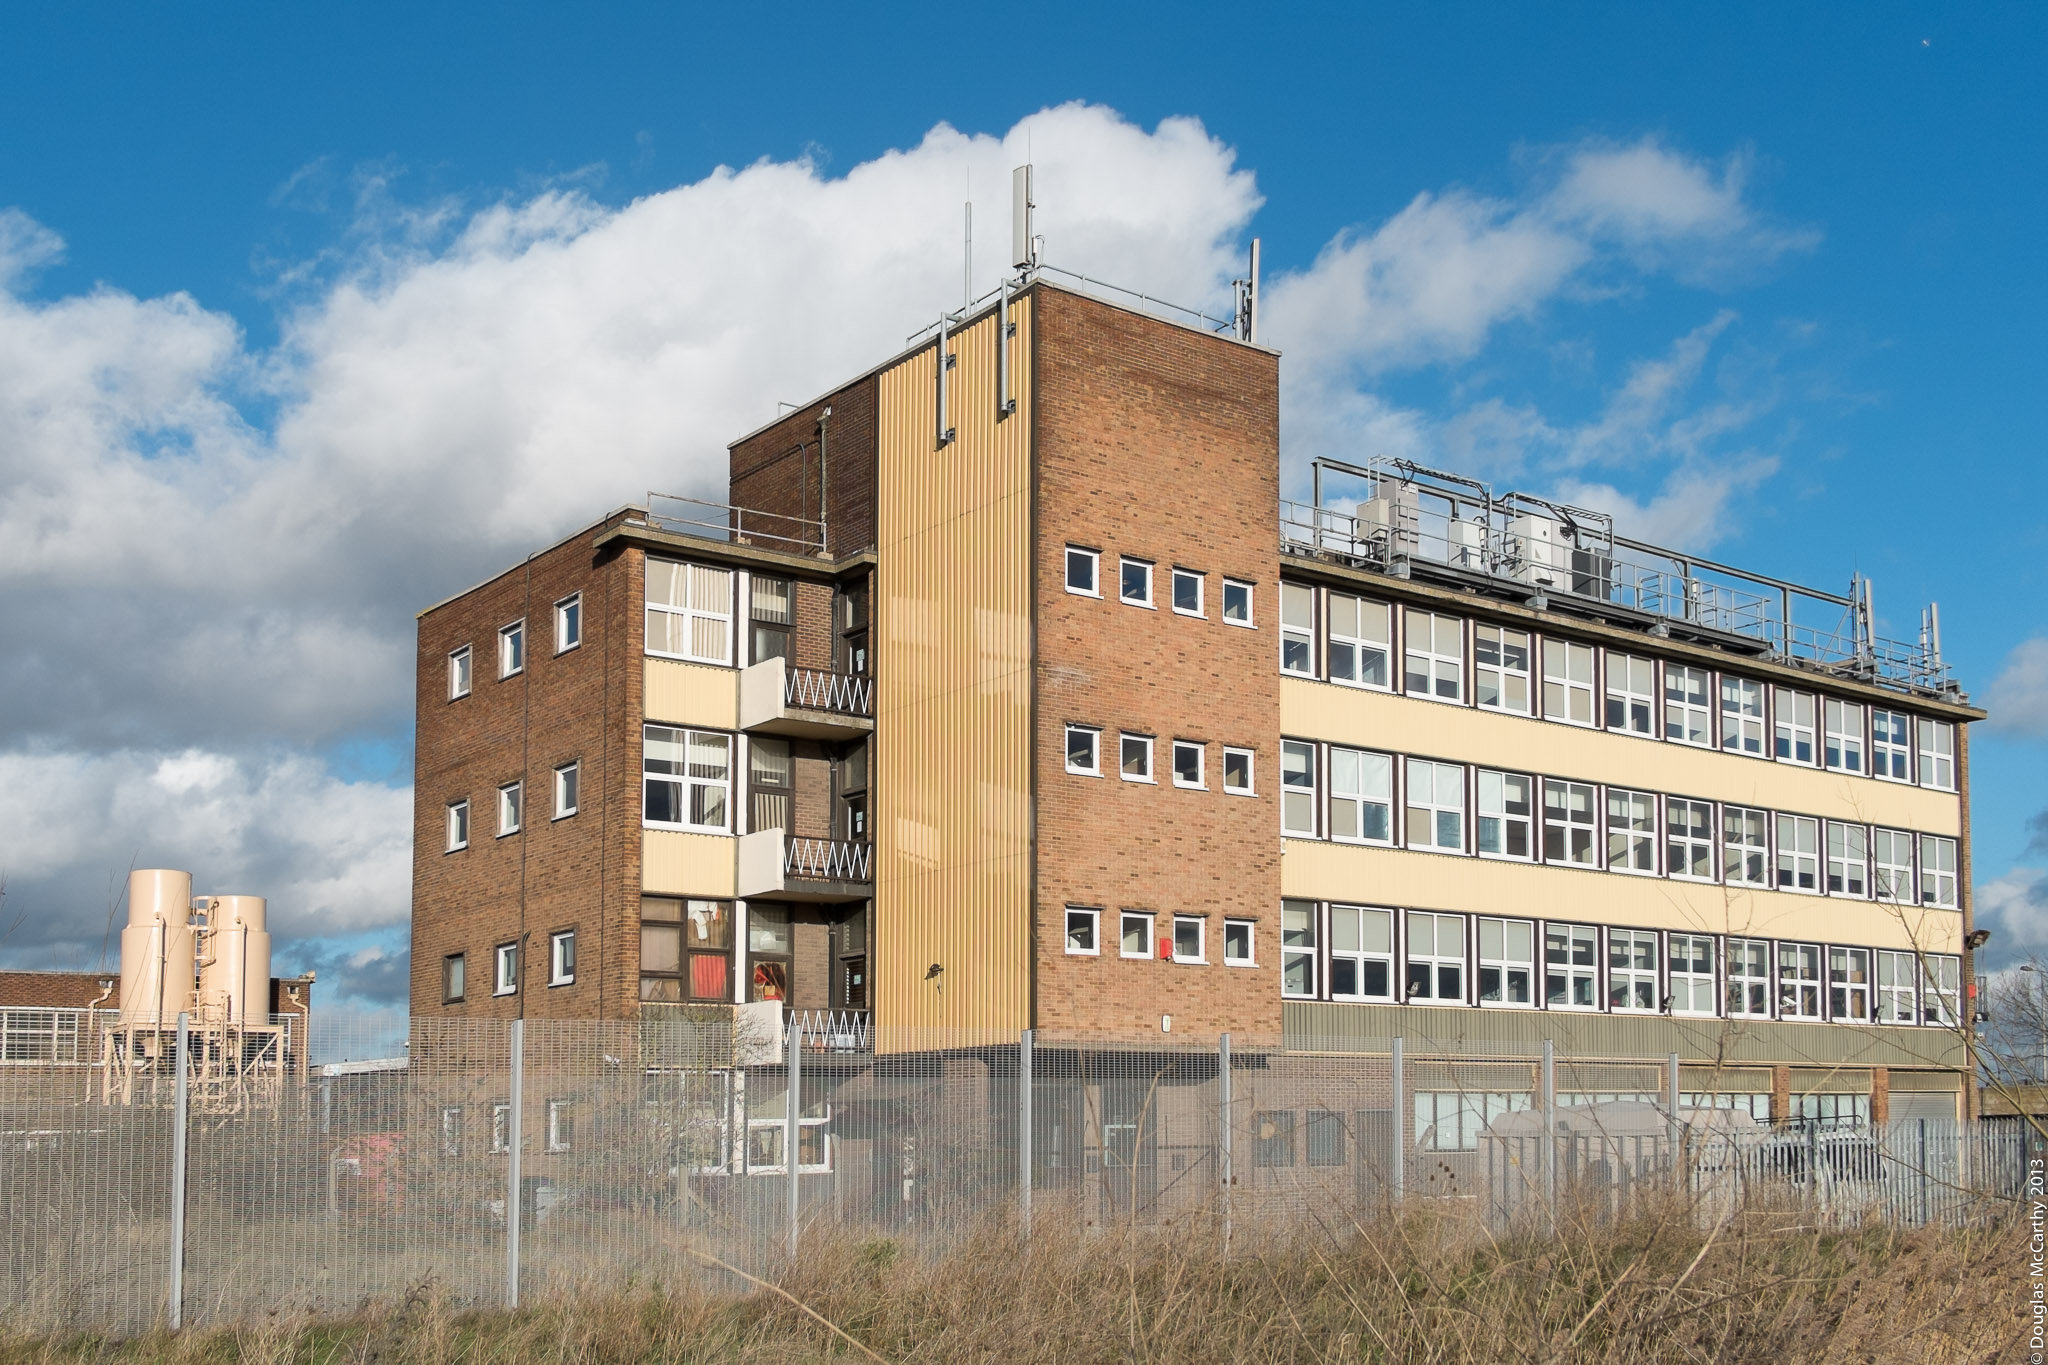 Harbour House, Rainham, Essex